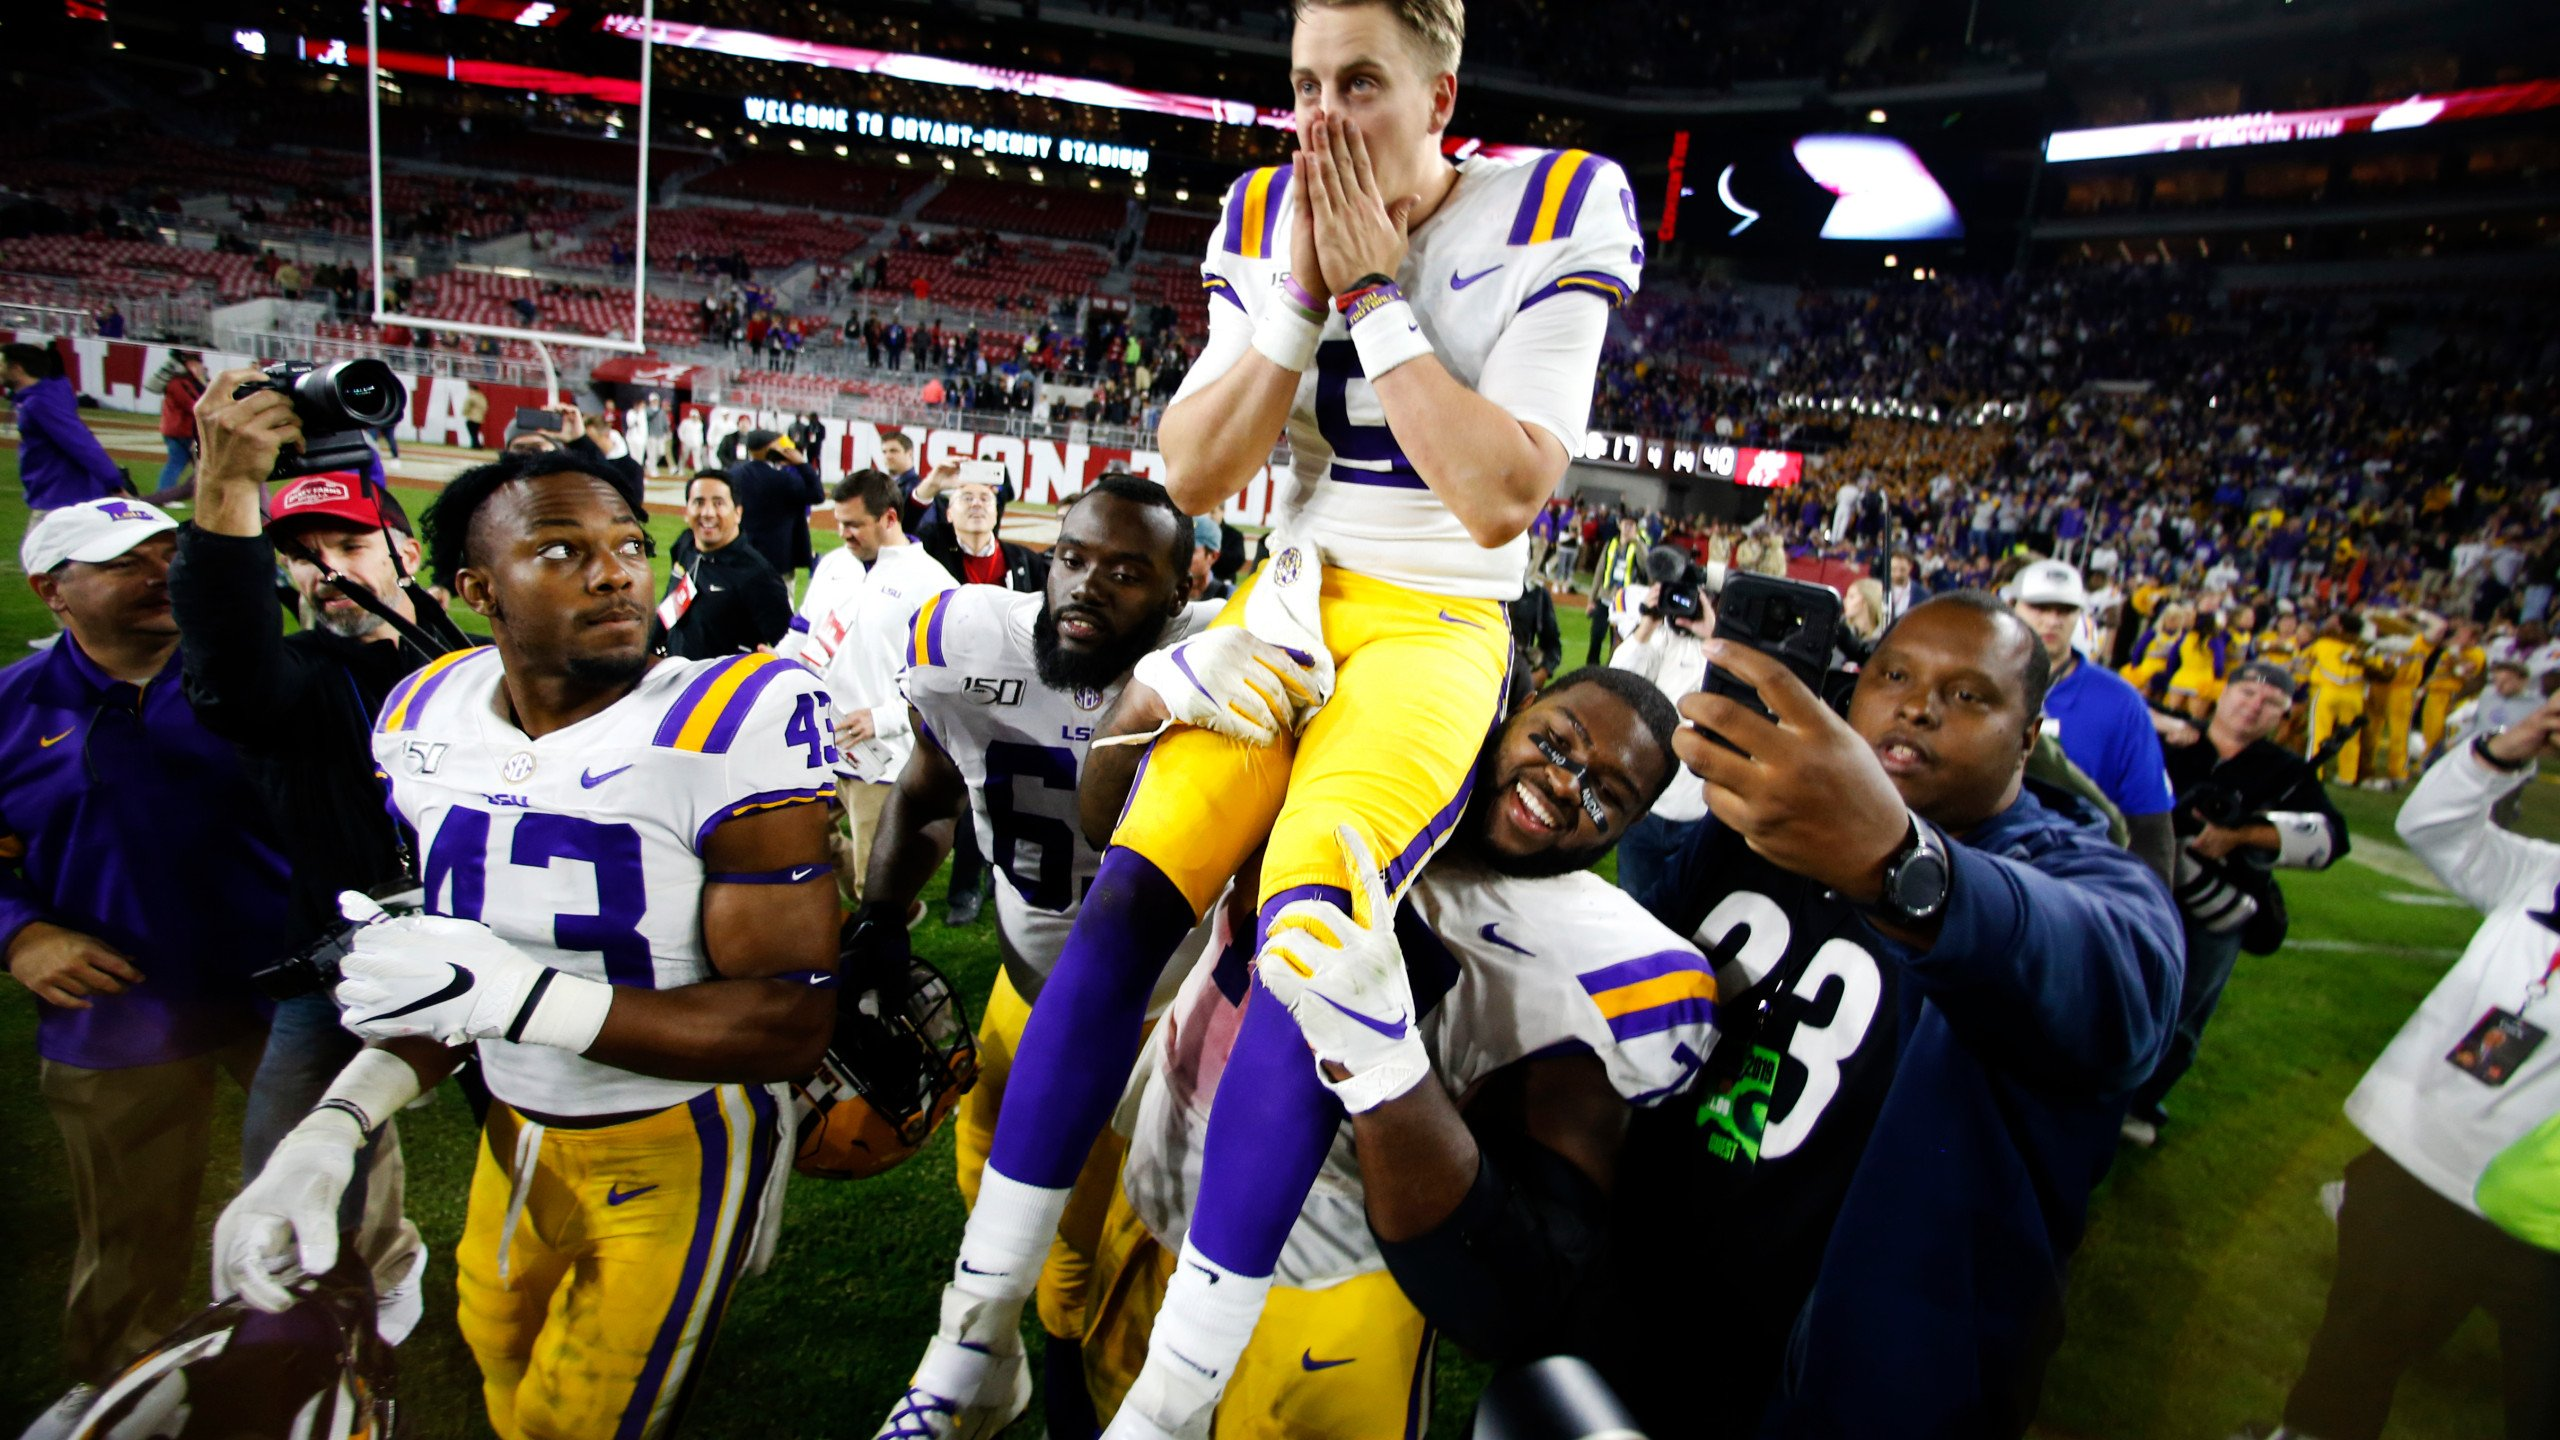 LSUs Joe Burrow to grace the cover of Sports Illustrated KTVE 2560x1440